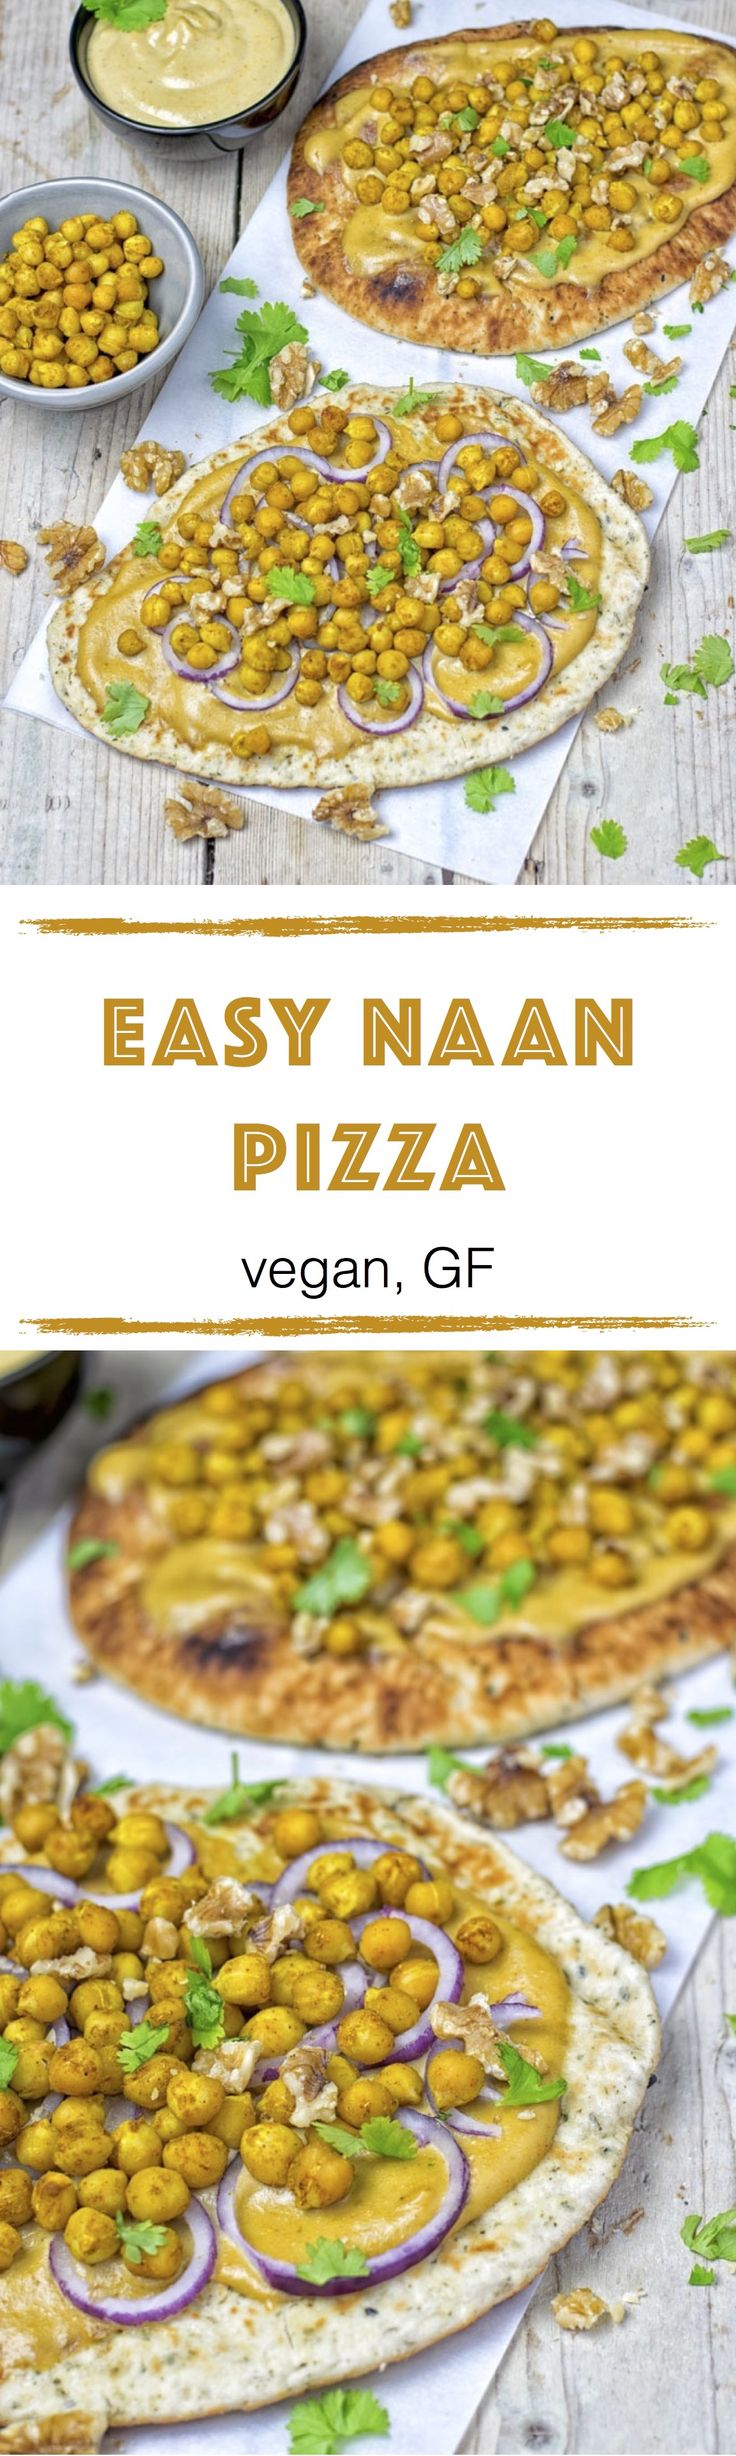 This easy homemade Easy Naan Pizza with Tandoori spiced chickpeas and a delicious green curry sauce. Also vegan and gluten free, for an incredibly delicious and flavorful dinner or lunch.